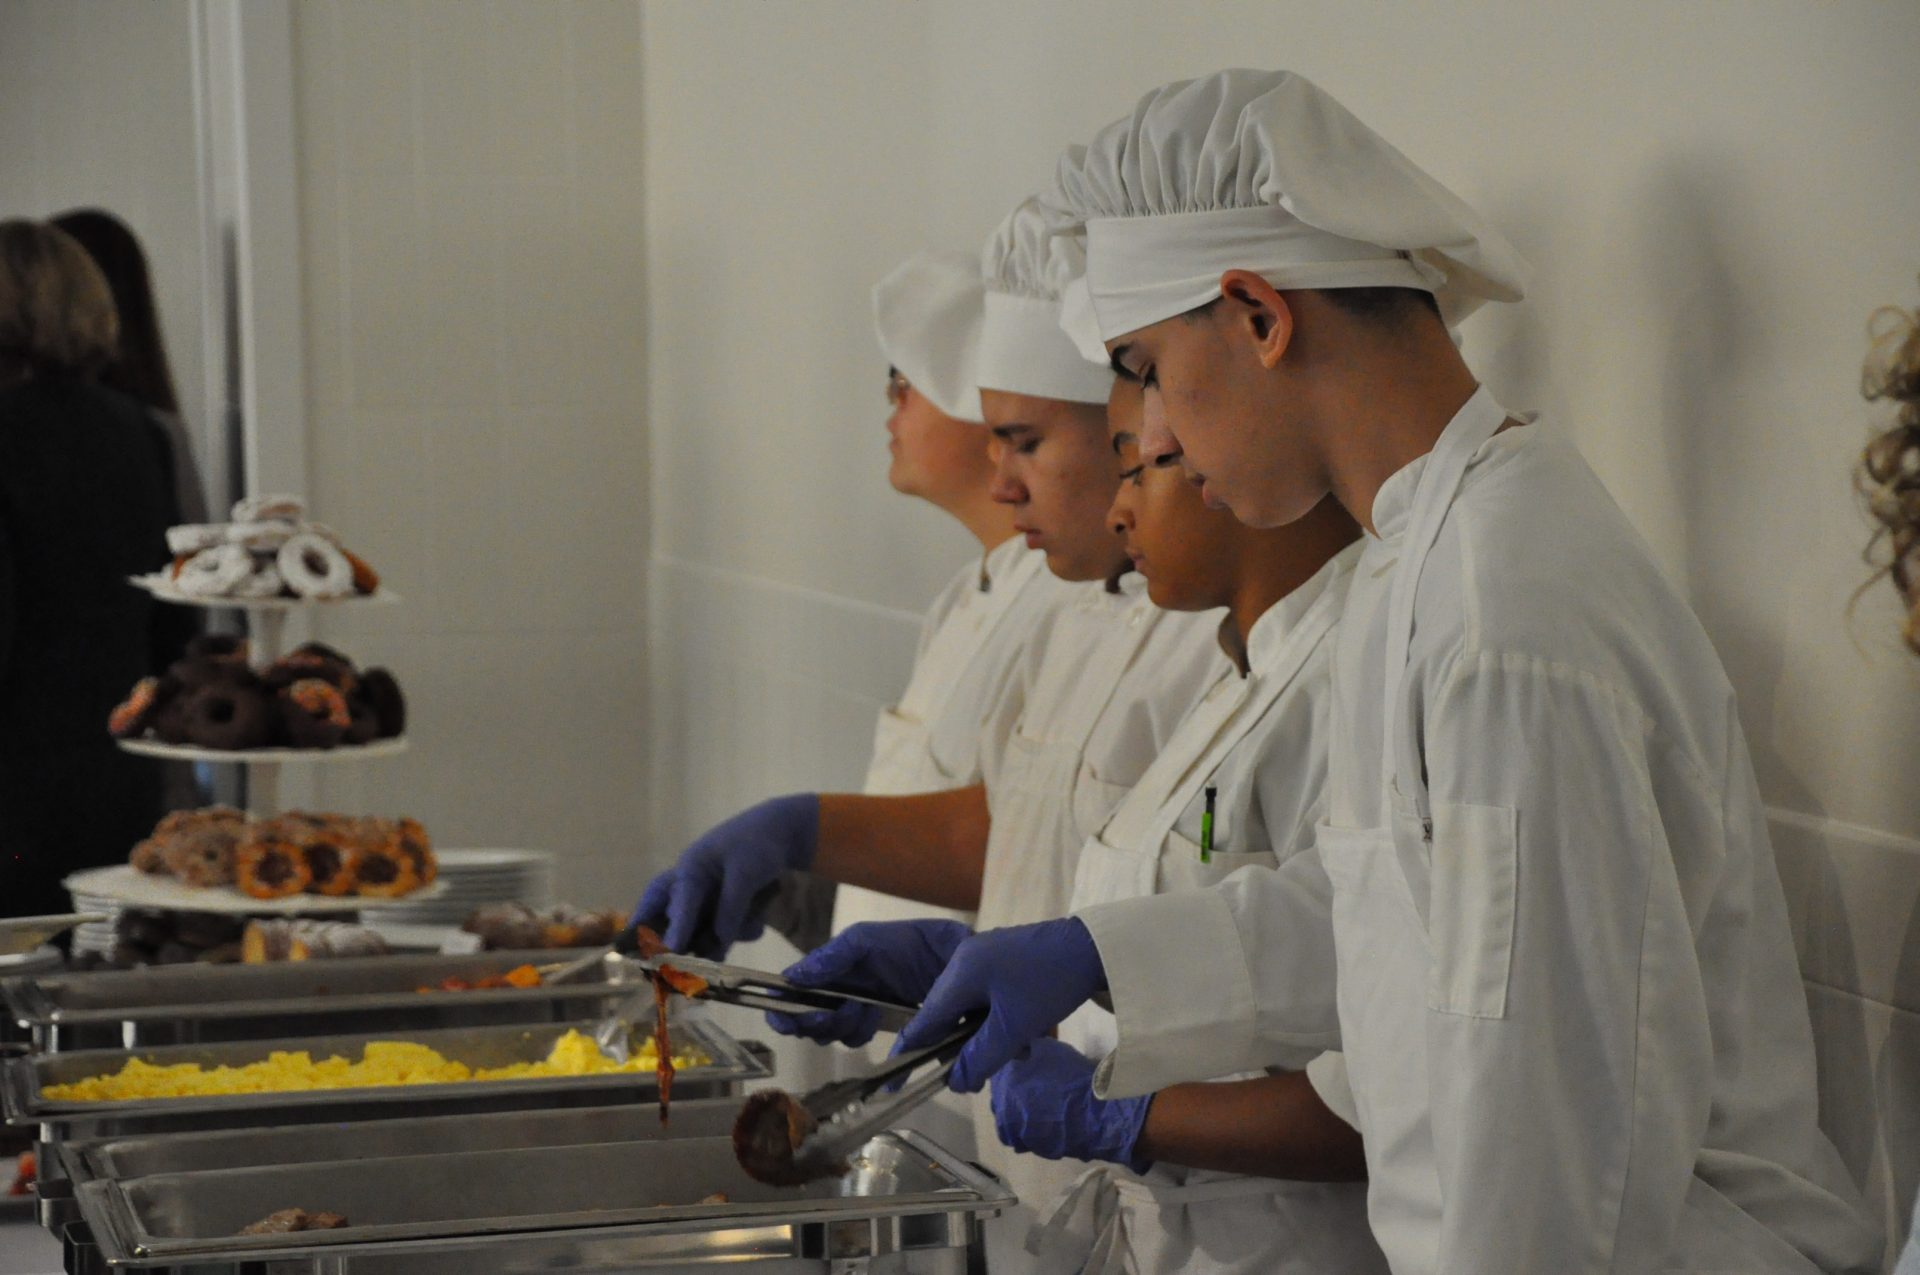 culinary group looking at the food